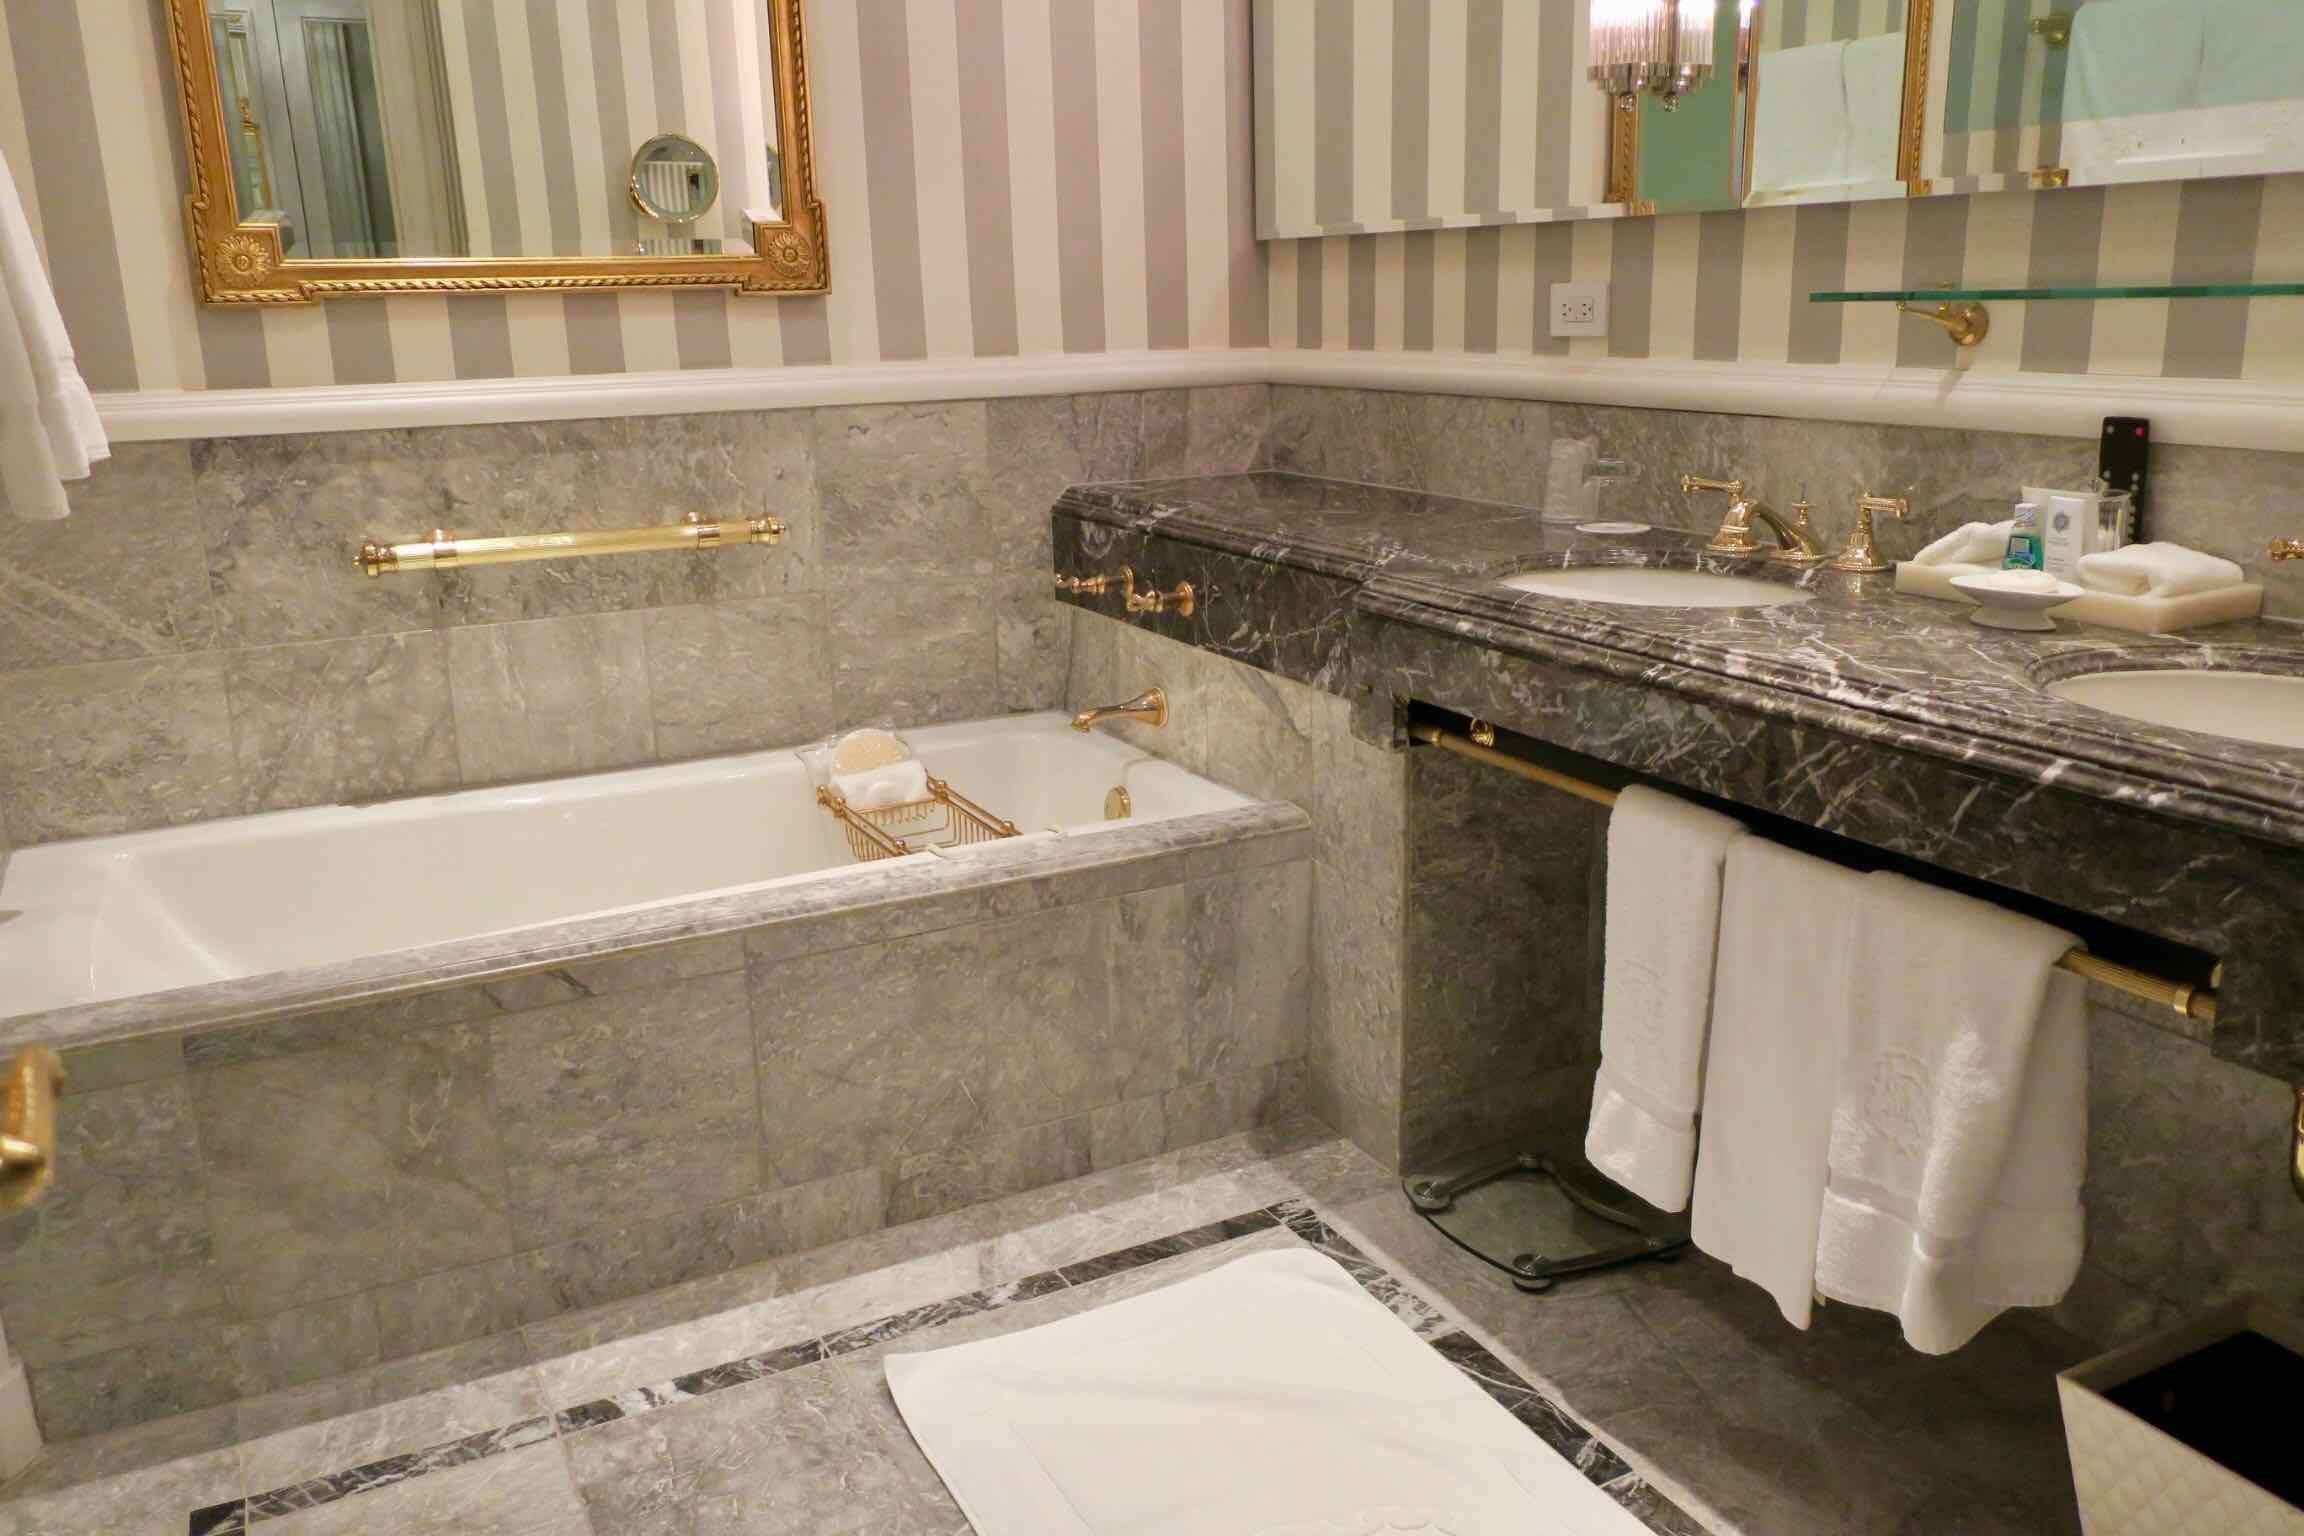 The St. Regis New York Superior Room bathroom